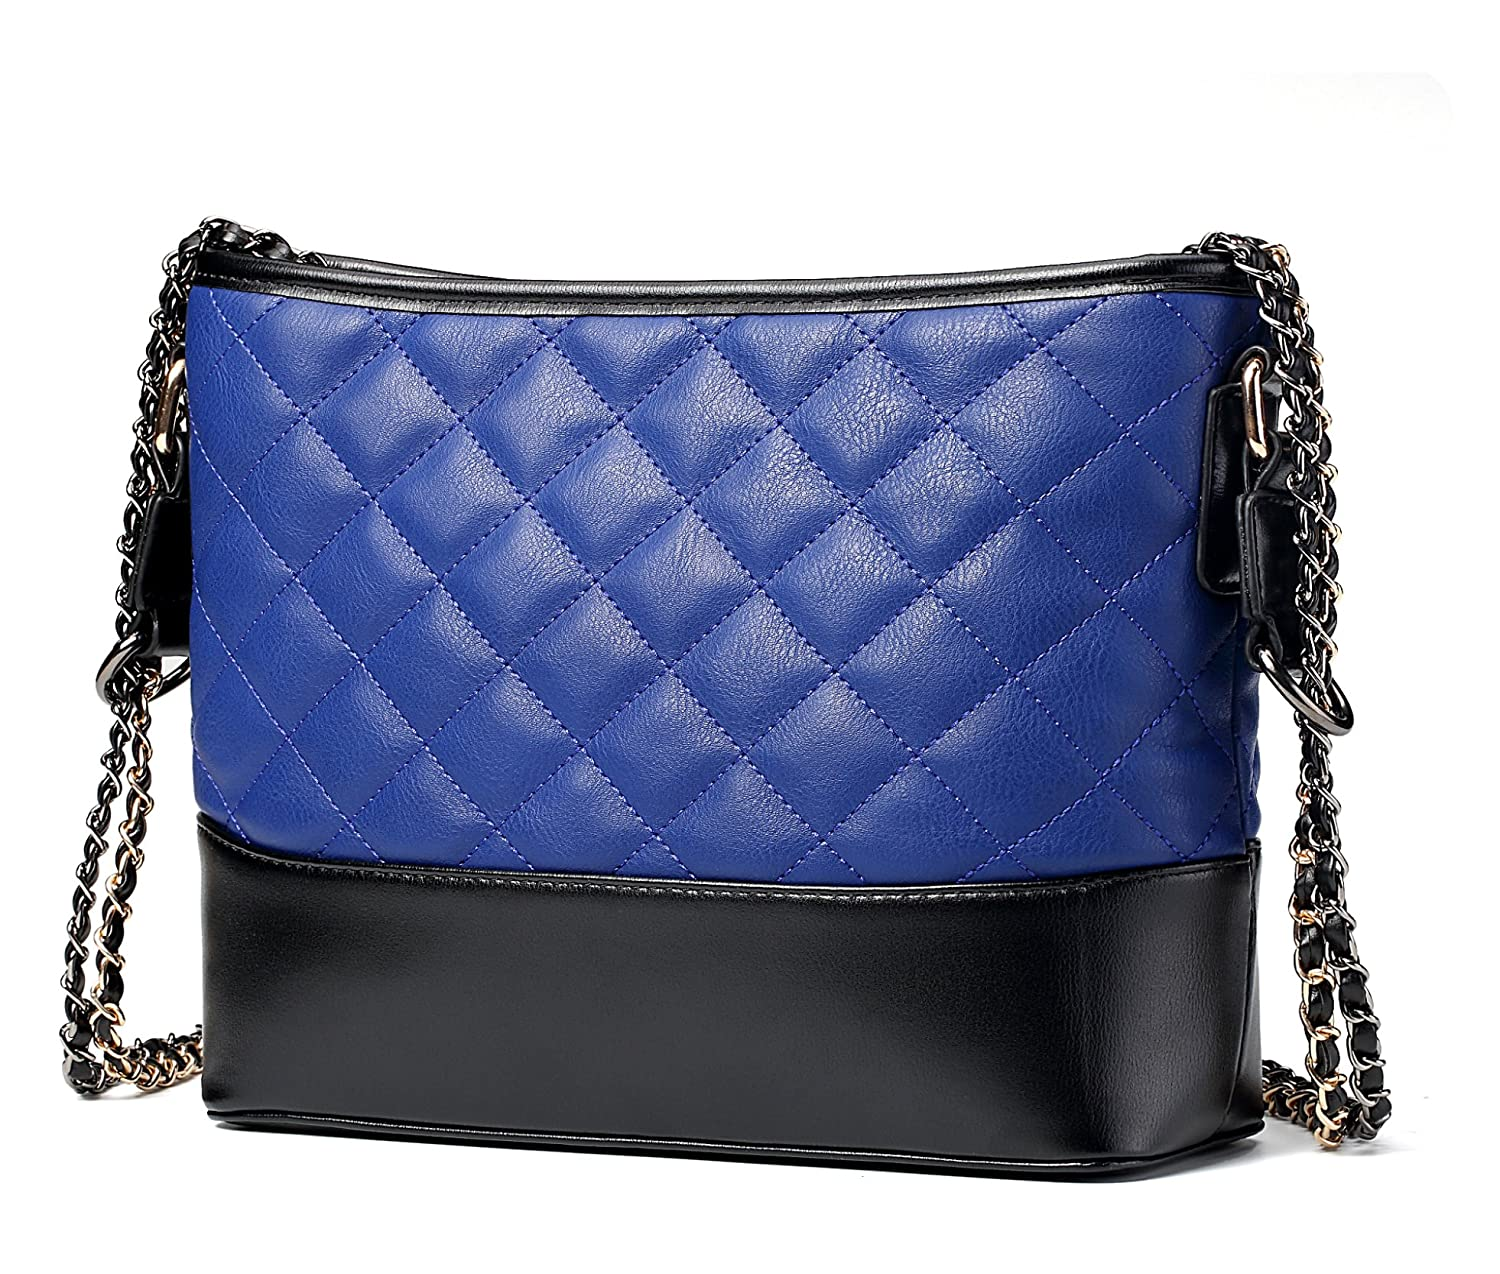 a2f233199654 Amazon.com  Women s Quilted Shoulder Bag PU Leather Crossbody Bags Fashion  Chain Satchel Handbags Purse for Women  Clothing